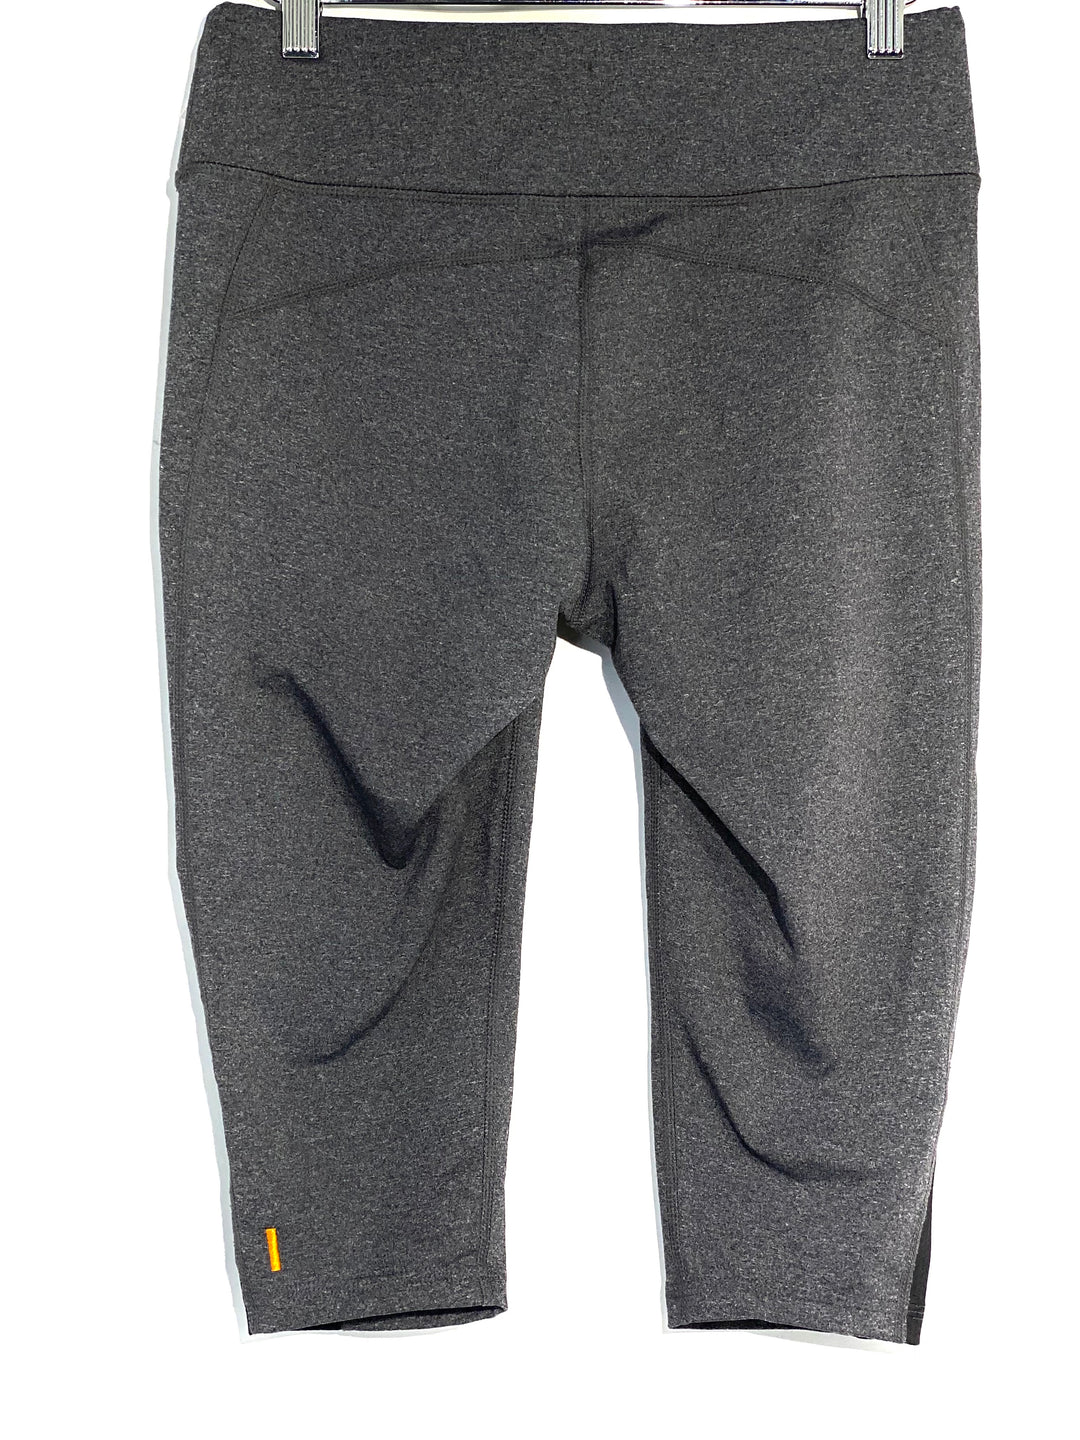 Photo #1 - BRAND: LUCY <BR>STYLE: ATHLETIC CAPRIS <BR>COLOR: GREY <BR>SIZE: S <BR>SKU: 262-26211-140446